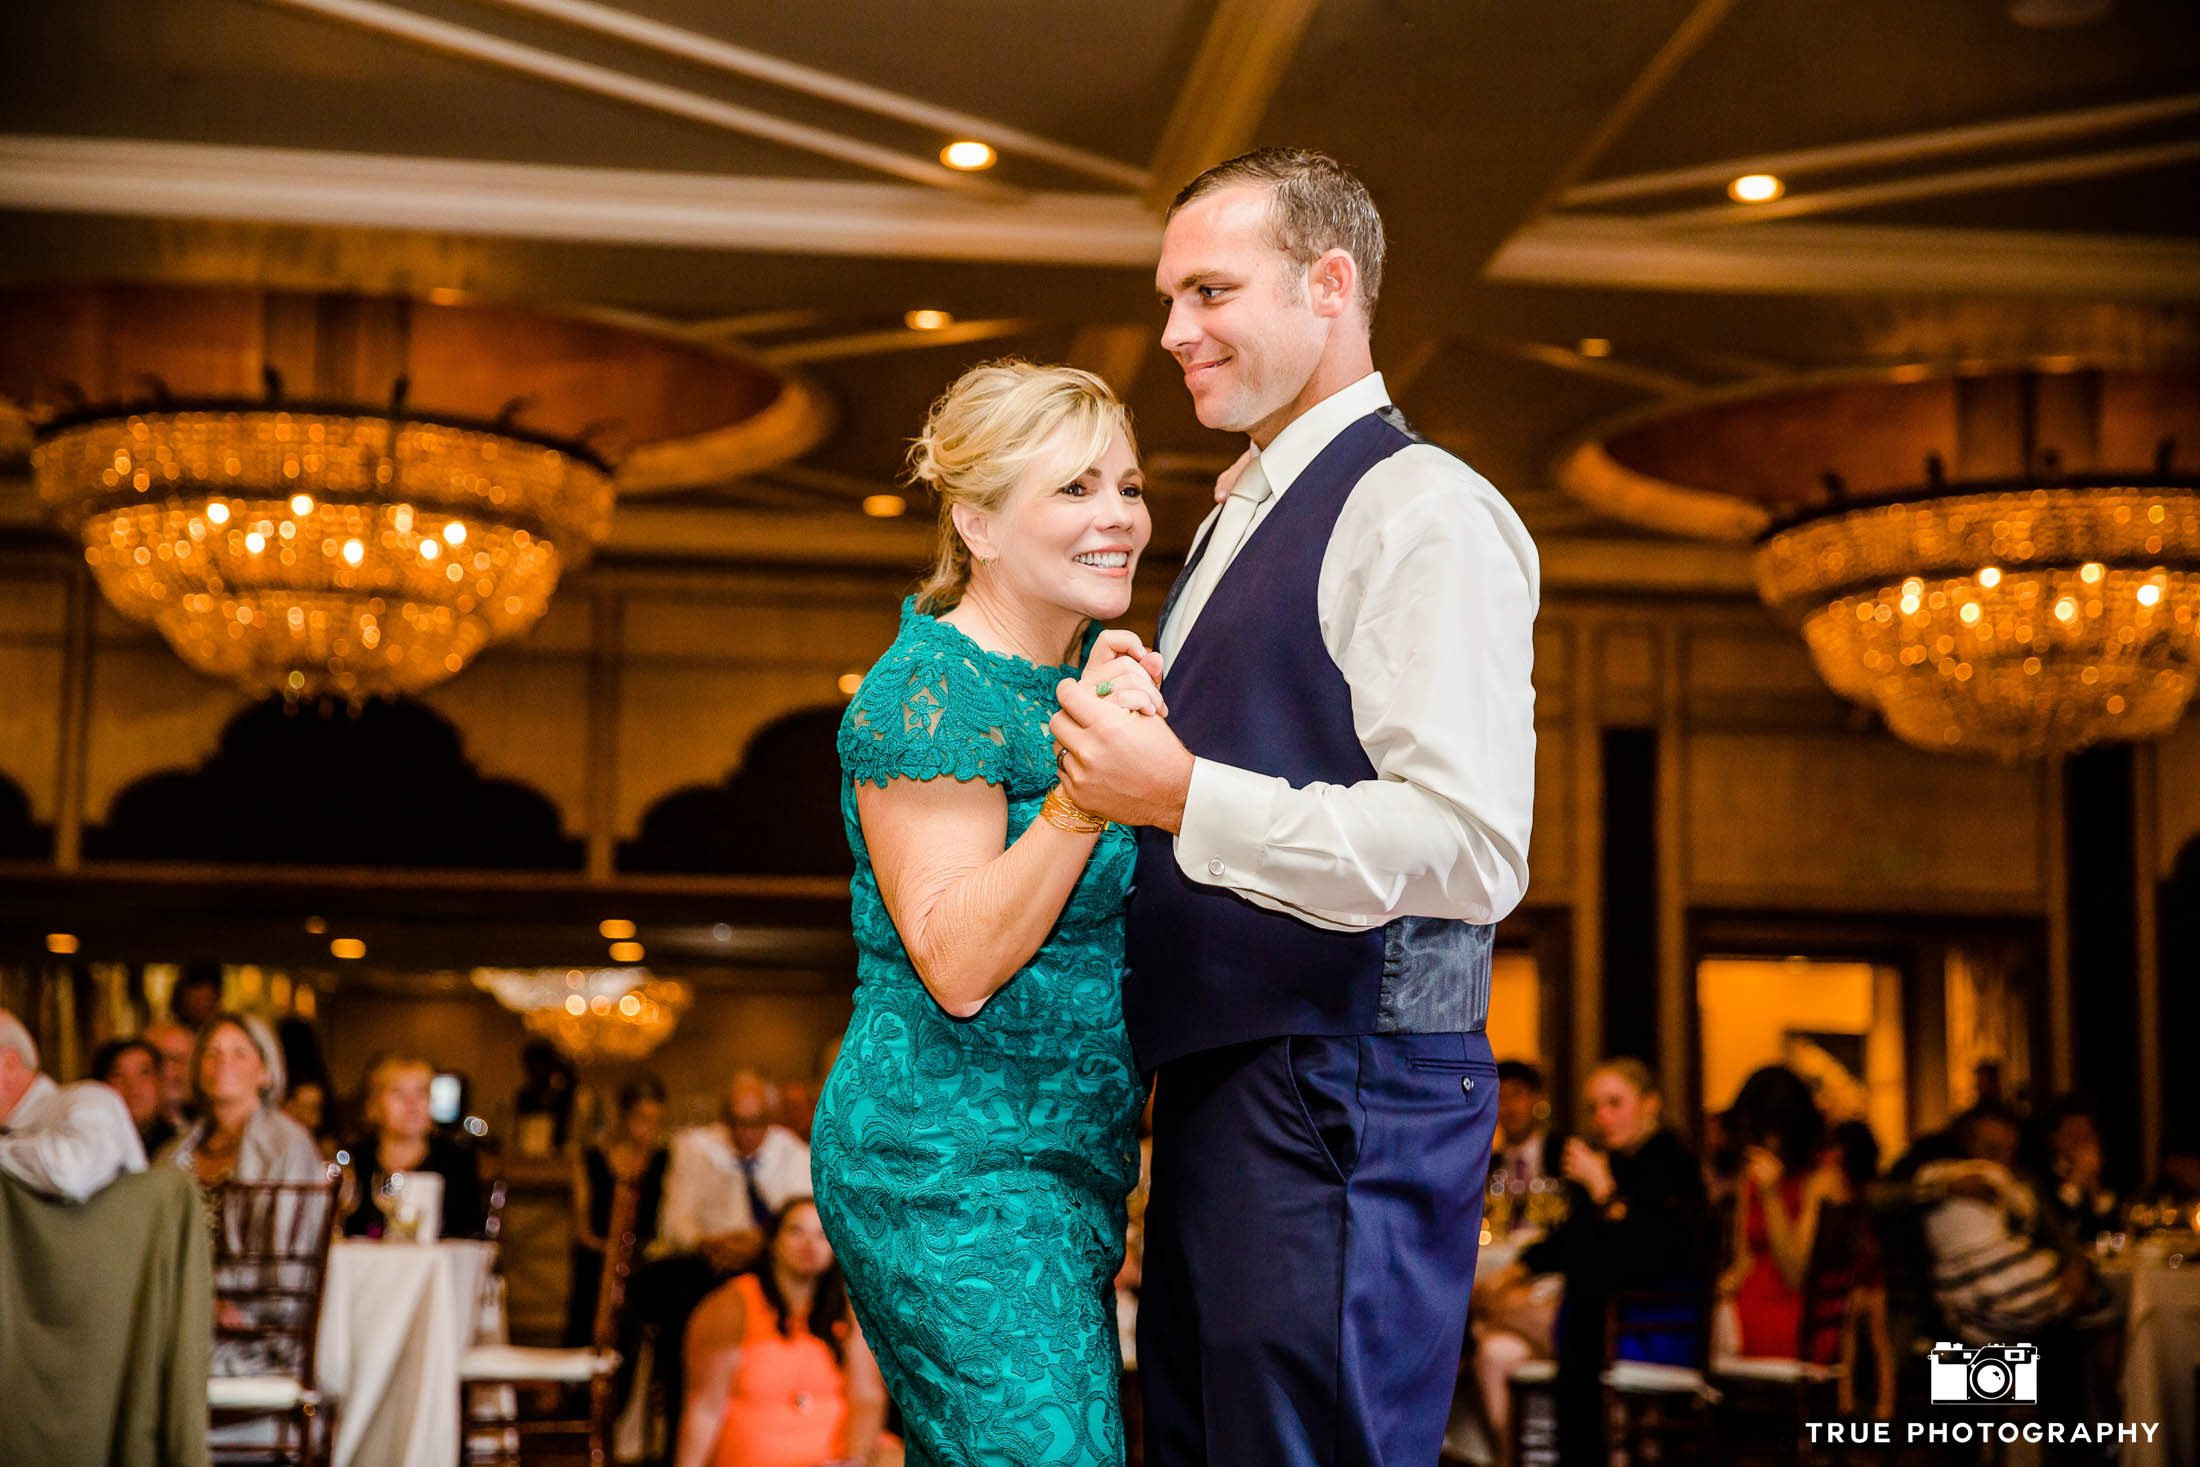 Groom and Mother smile during Mother and Son dance at wedding reception